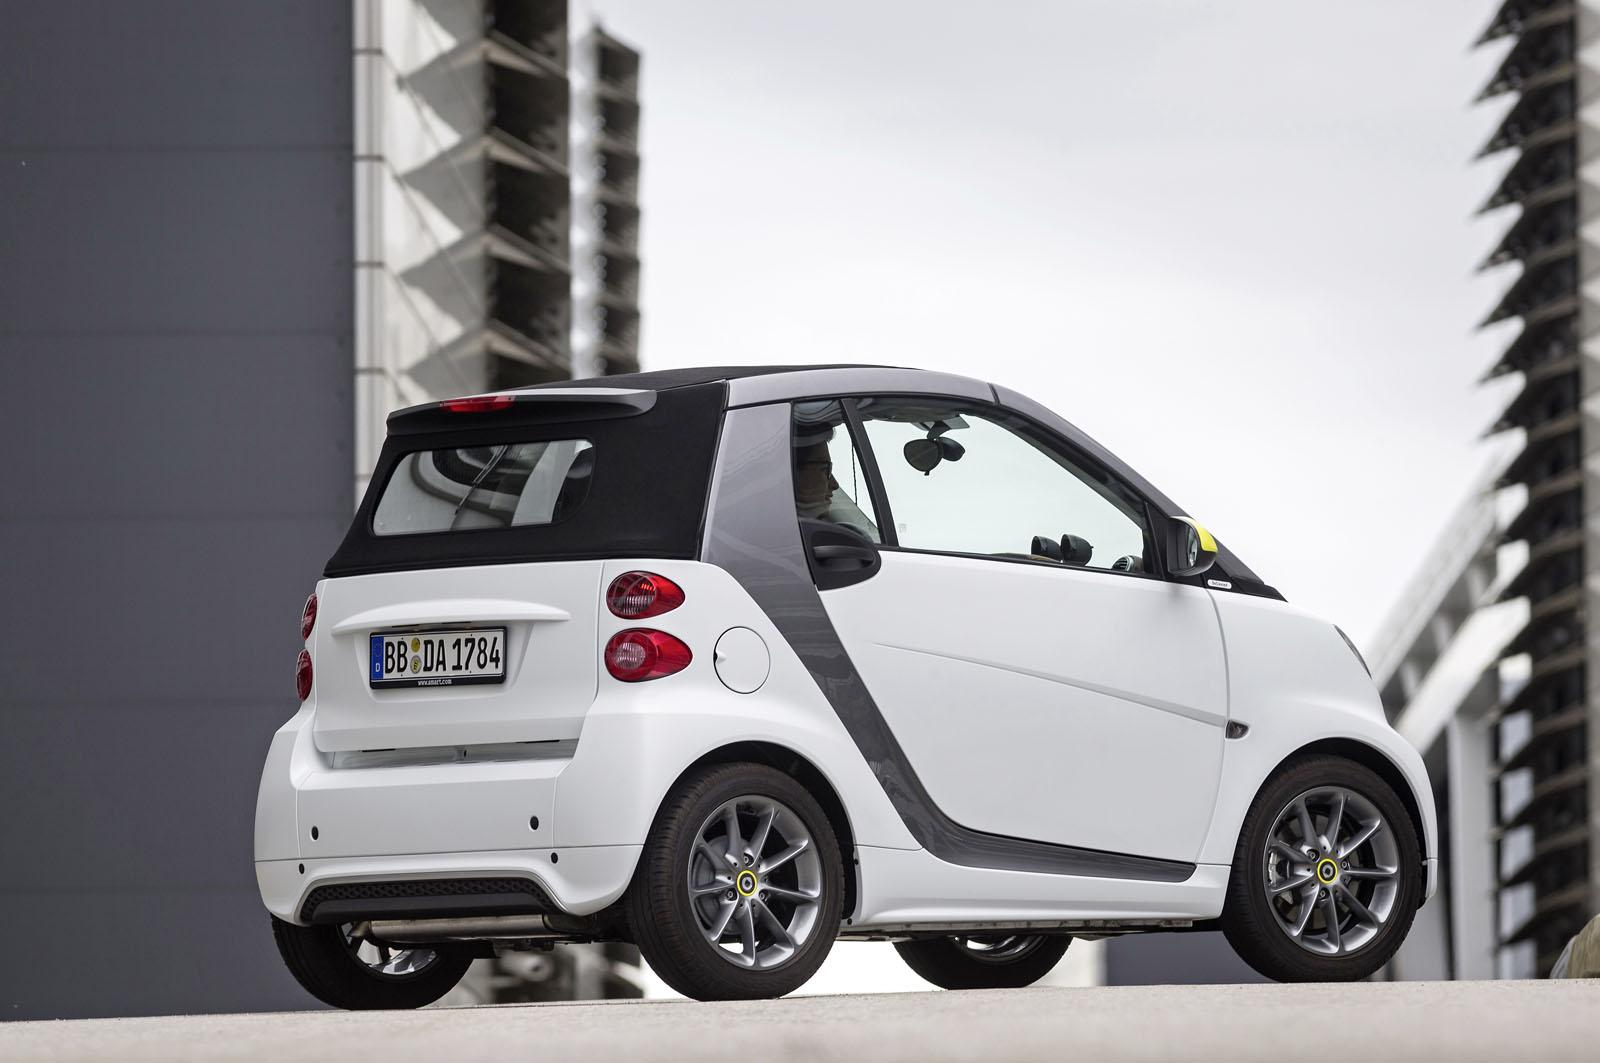 2014 Smart ForTwo BoConcept Edition 8 2014 Smart ForTwo BoConcept Special Edition launched